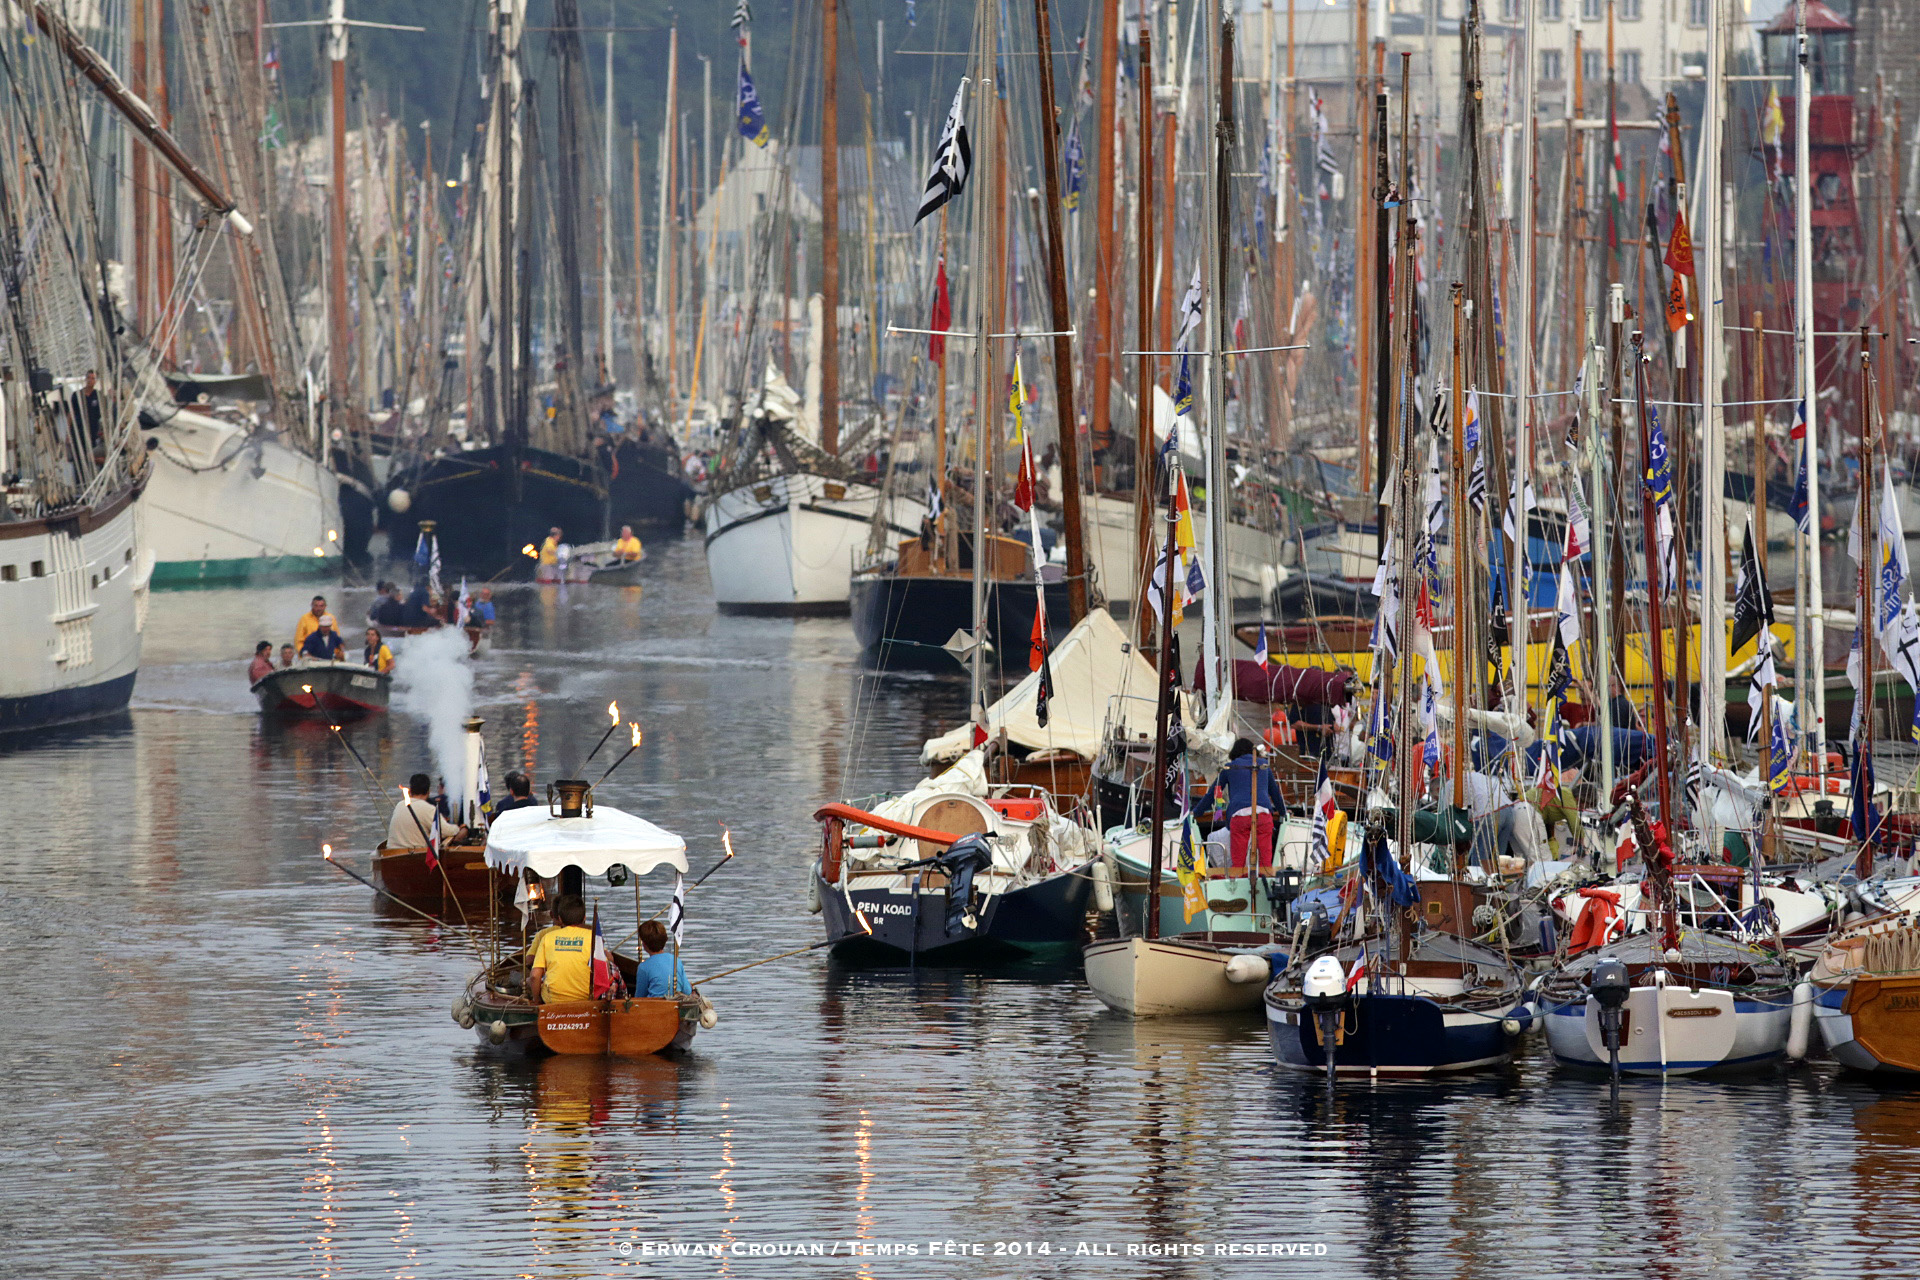 British Firework Championships & Paimpol Festival -Sailing Holiday -8 Nts 8th Aug